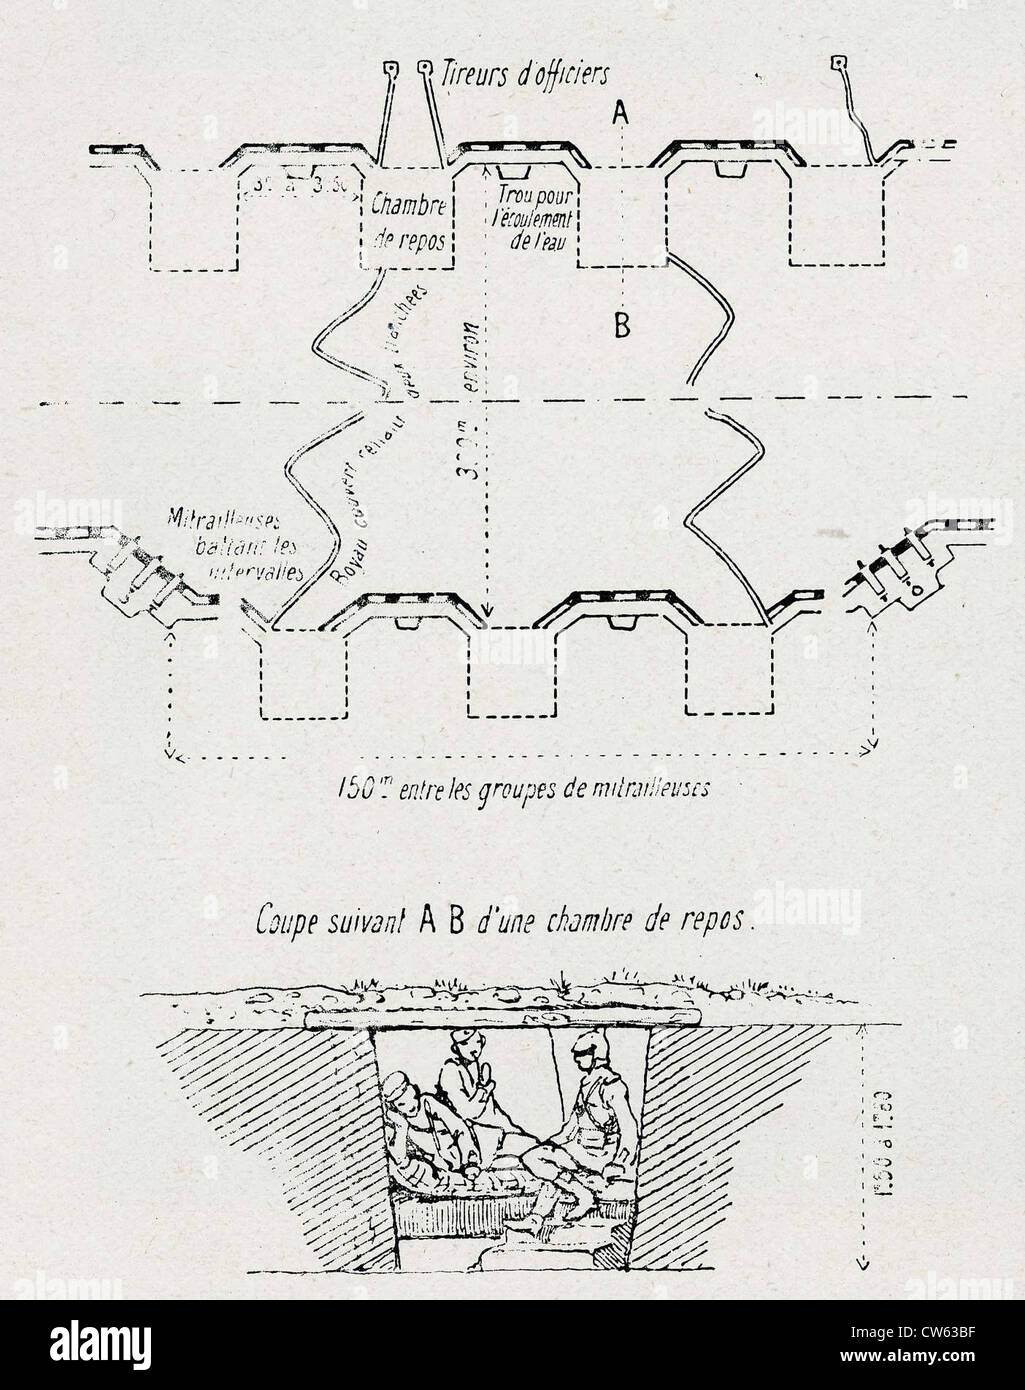 German Trench System 1914 During World War I Stock Photos Wwi Diagram Image